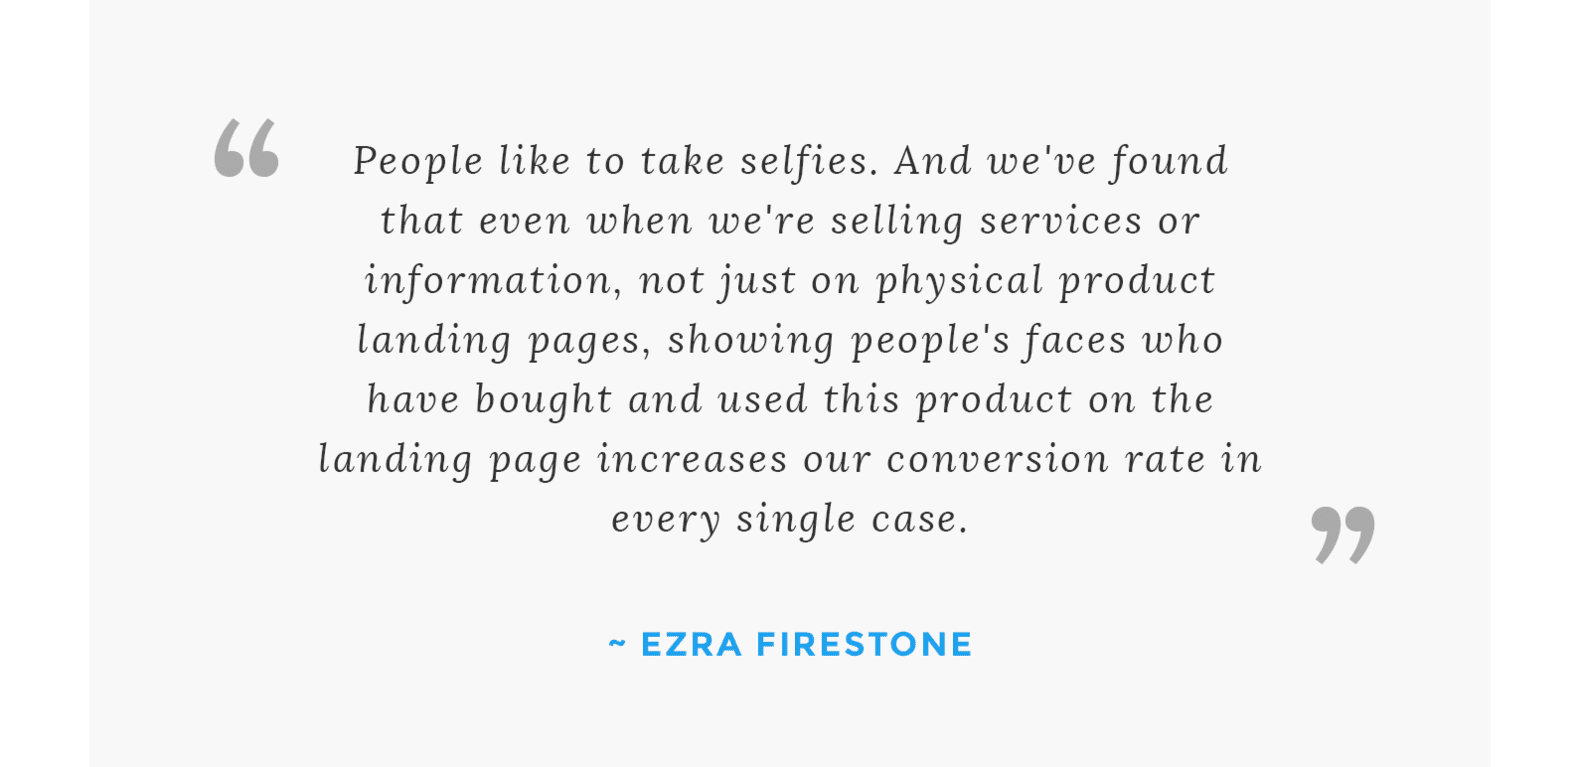 """People like to take selfies. And we've found that even when we're selling services or information, not just on physical product landing pages, showing people's faces who have bought and used this product on the landing page increases our conversion rate in every single case."" - Ezra Firestone"